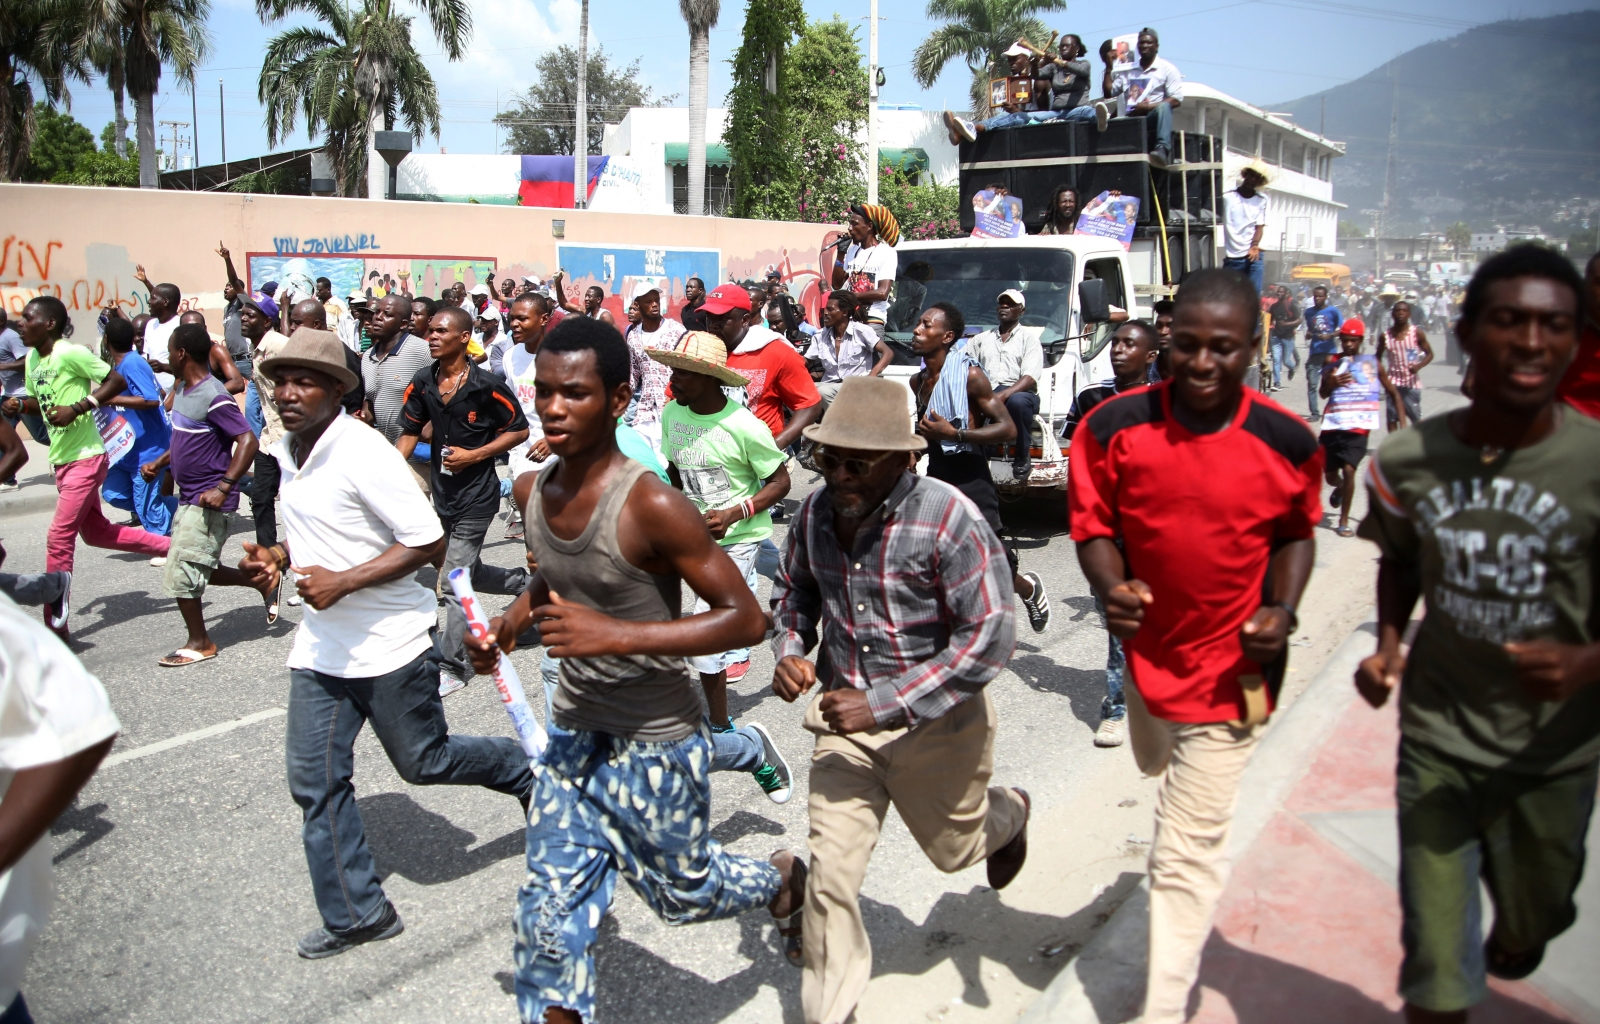 Haiti unrest